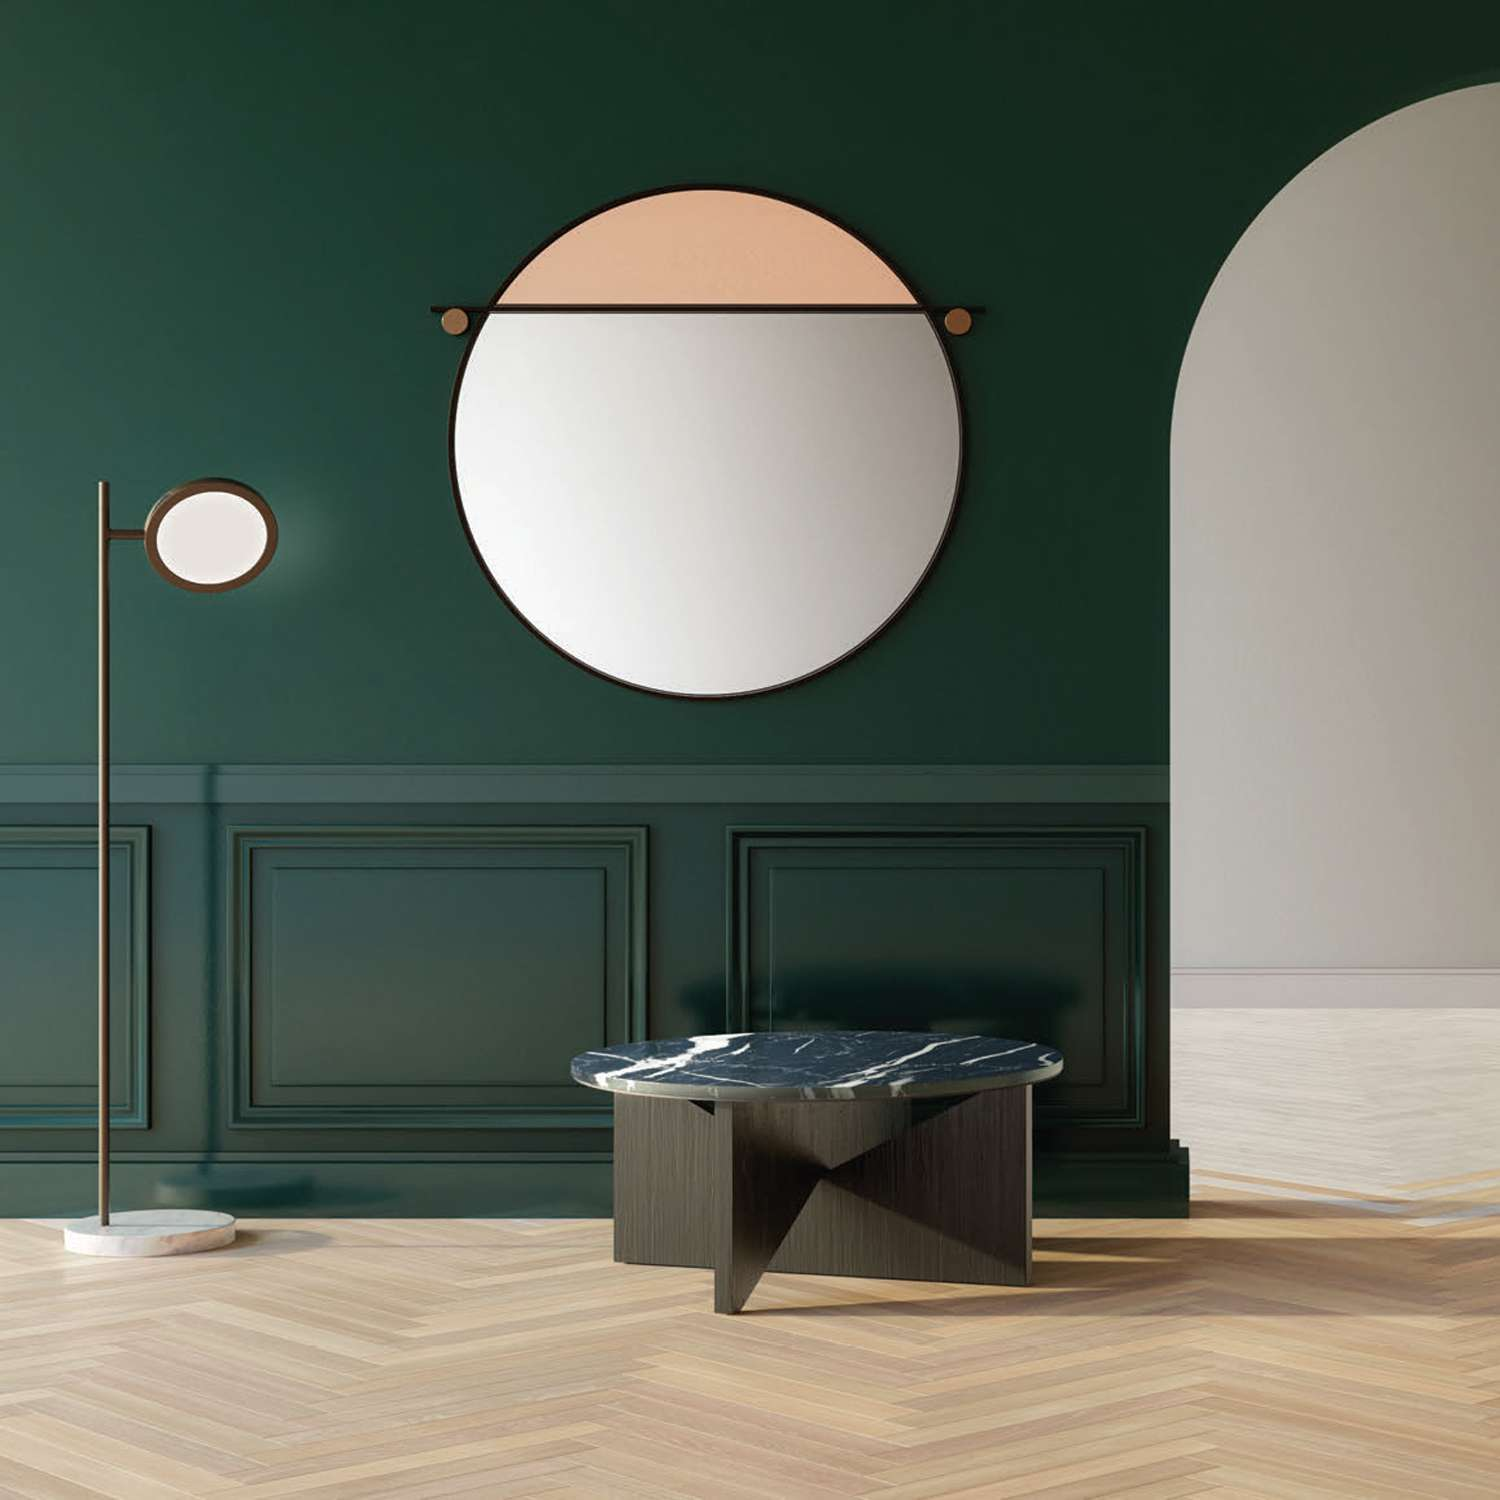 American brand Matter Made released the extremely graphic range of 'Abal' mirrors designed by Visibility.